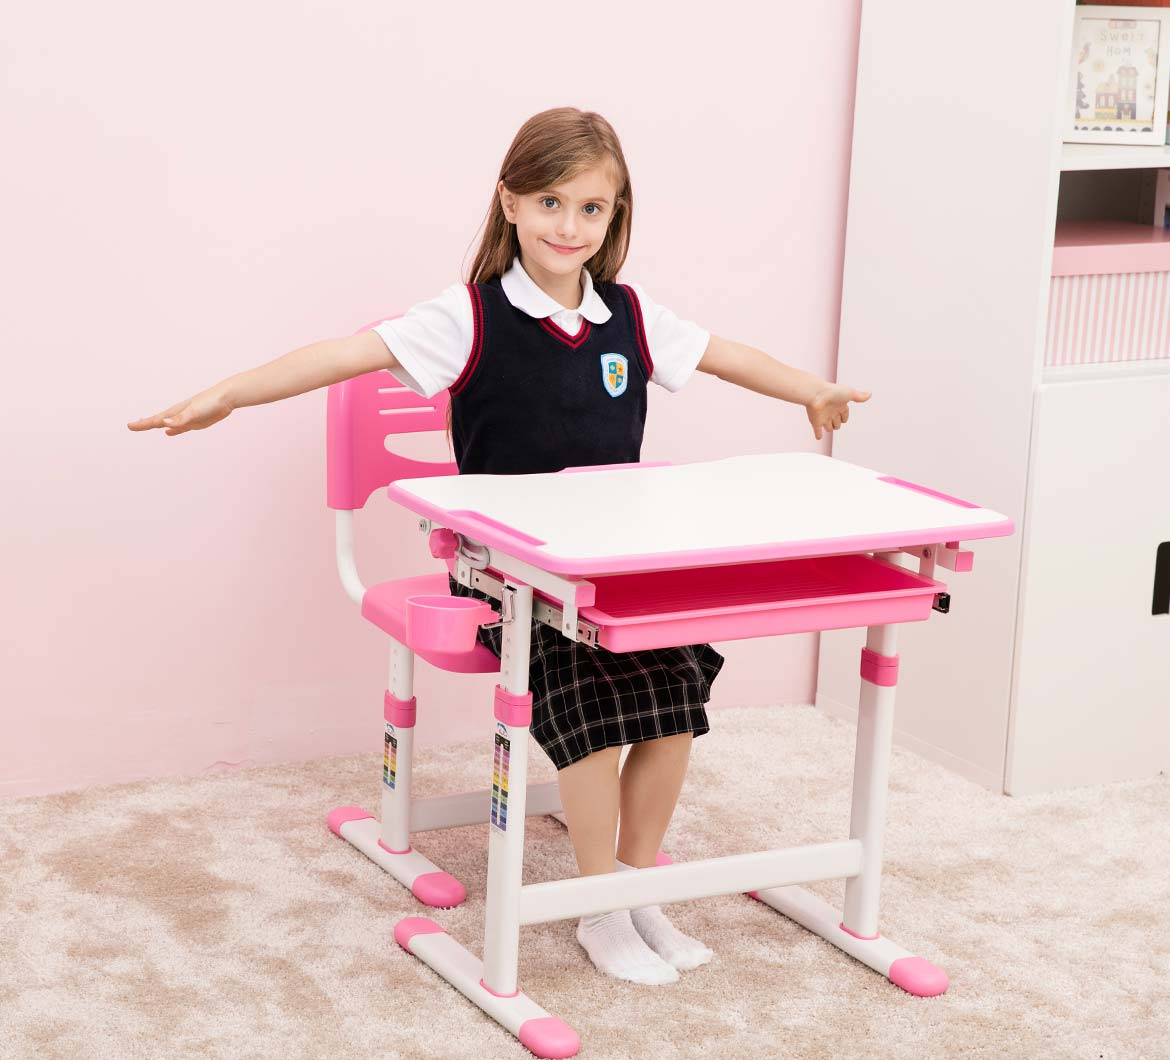 height-adjustable-kids-desk-chair-ergonomic-pink-table-for-girls-portfolio-mini-pink-1